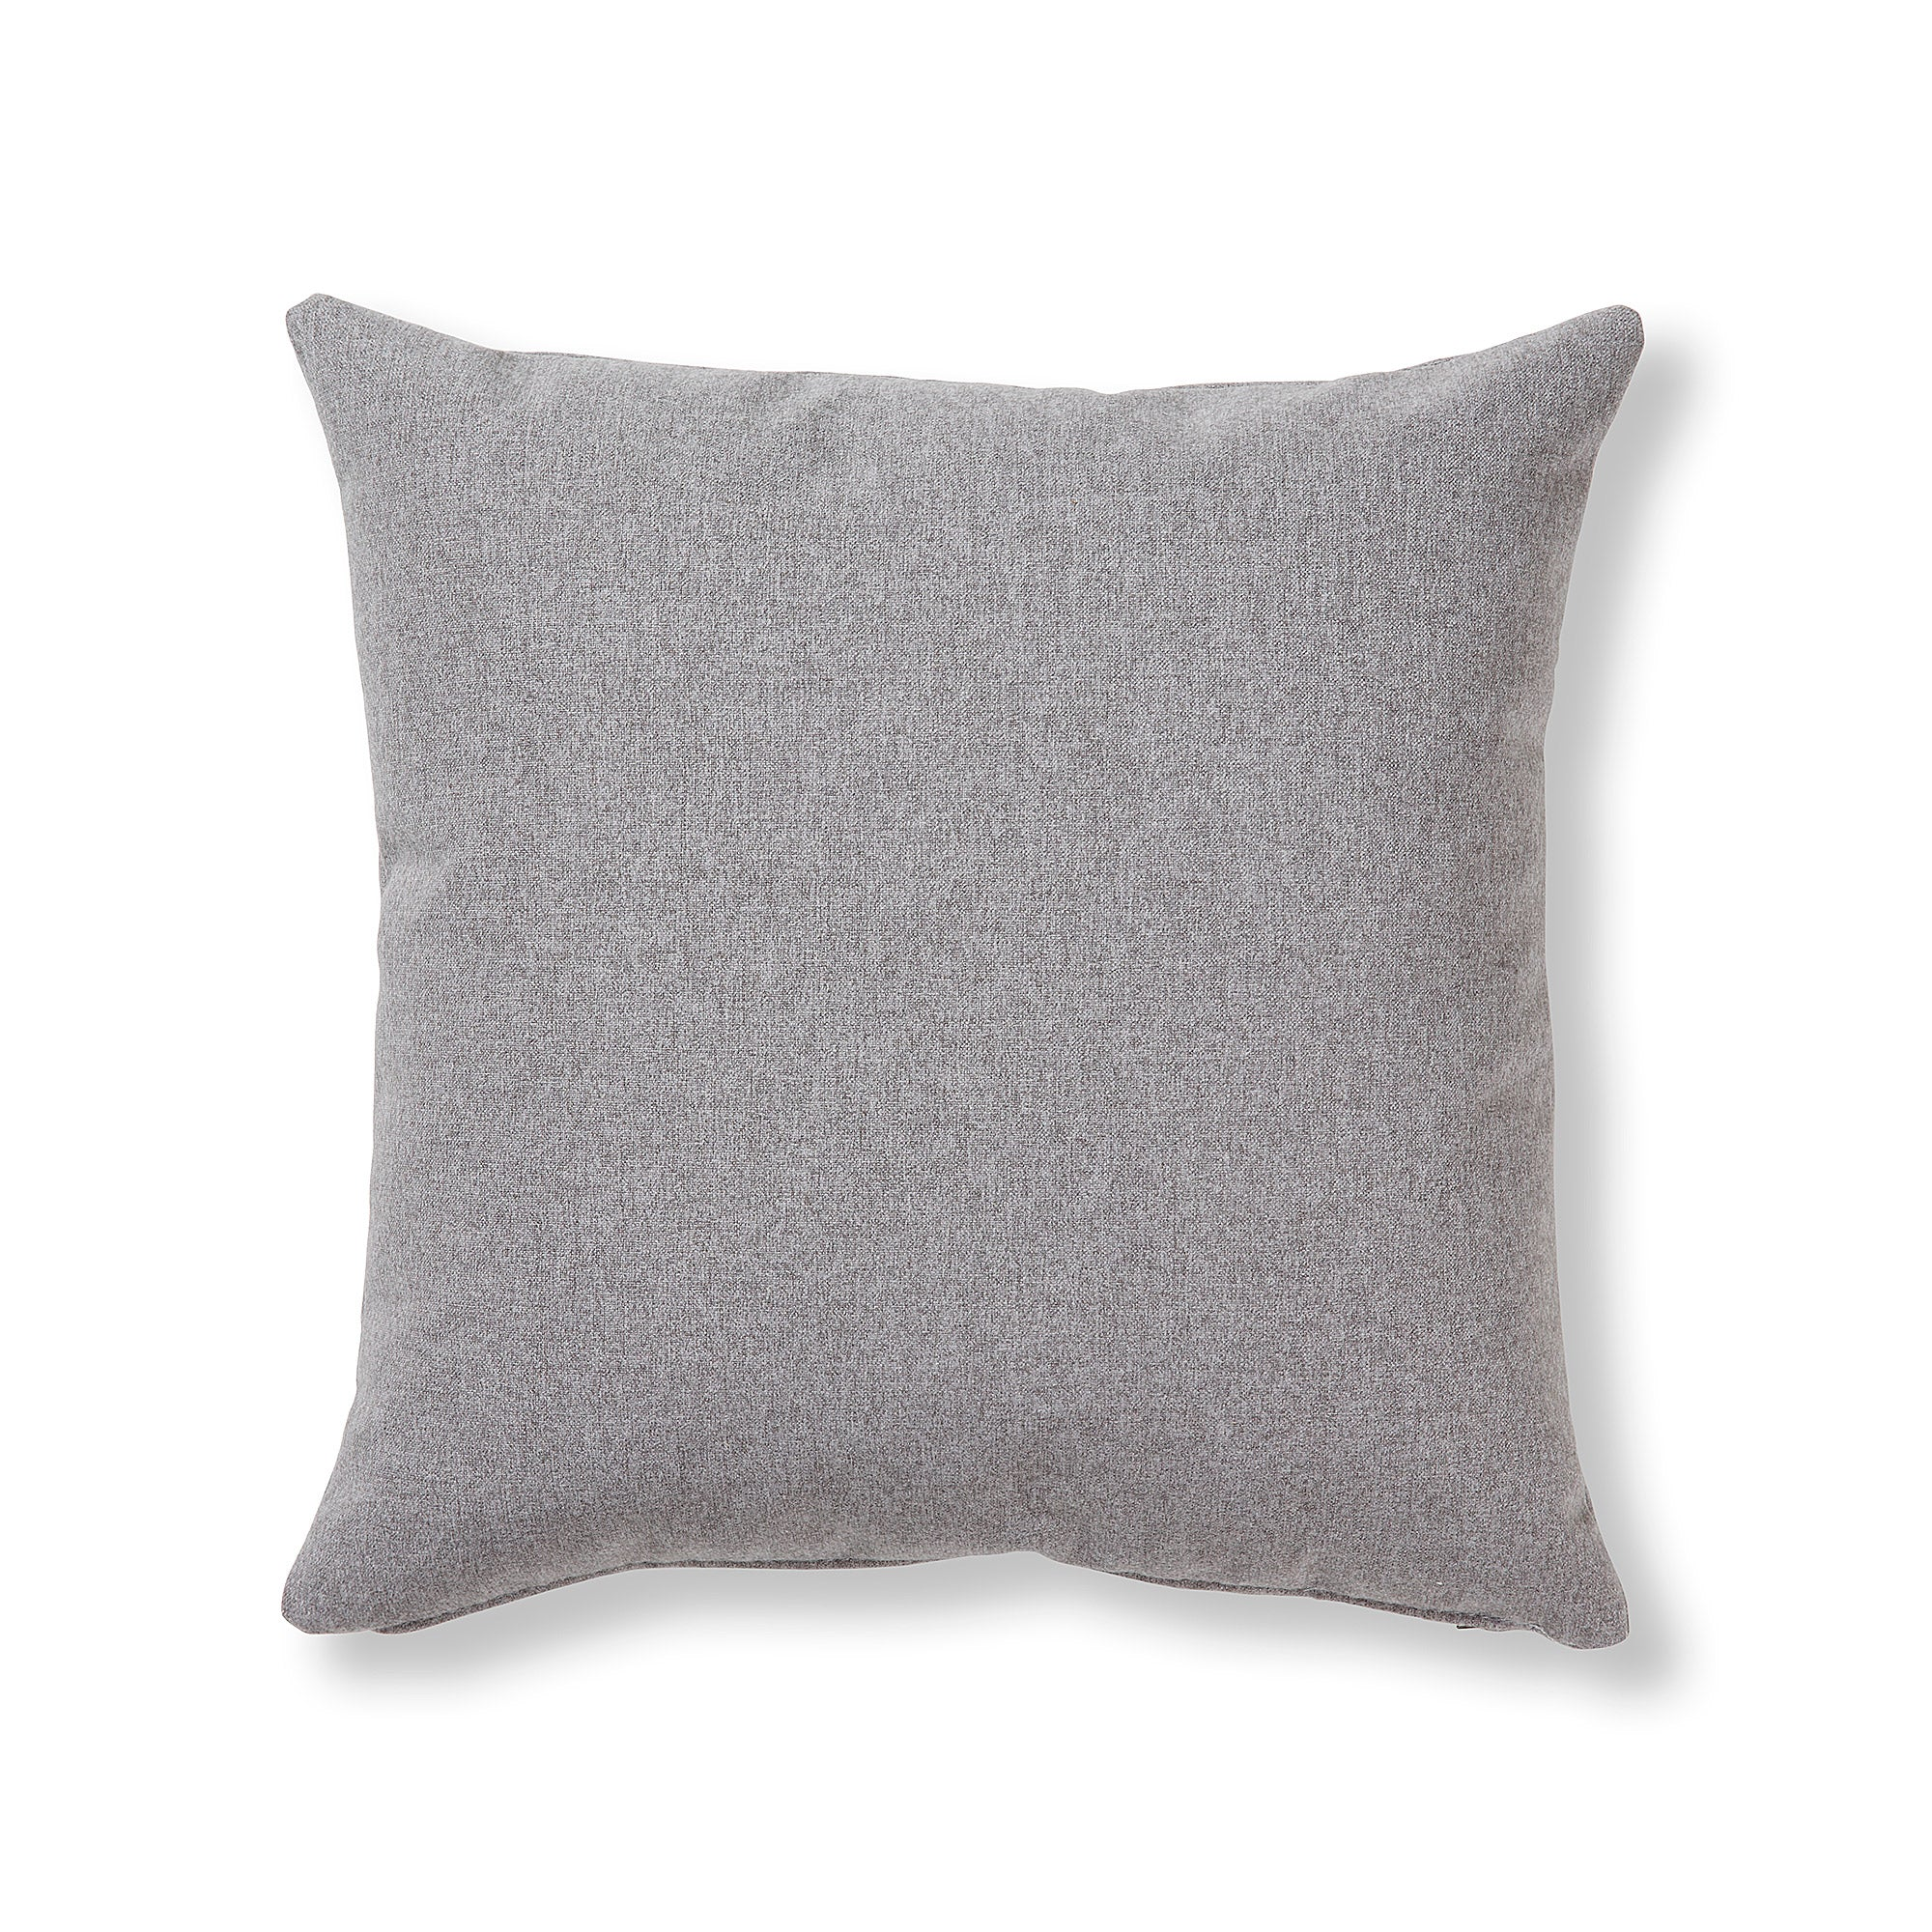 Minda Cushion 45x45 fabric grey,, Decor - Home-Buy Interiors